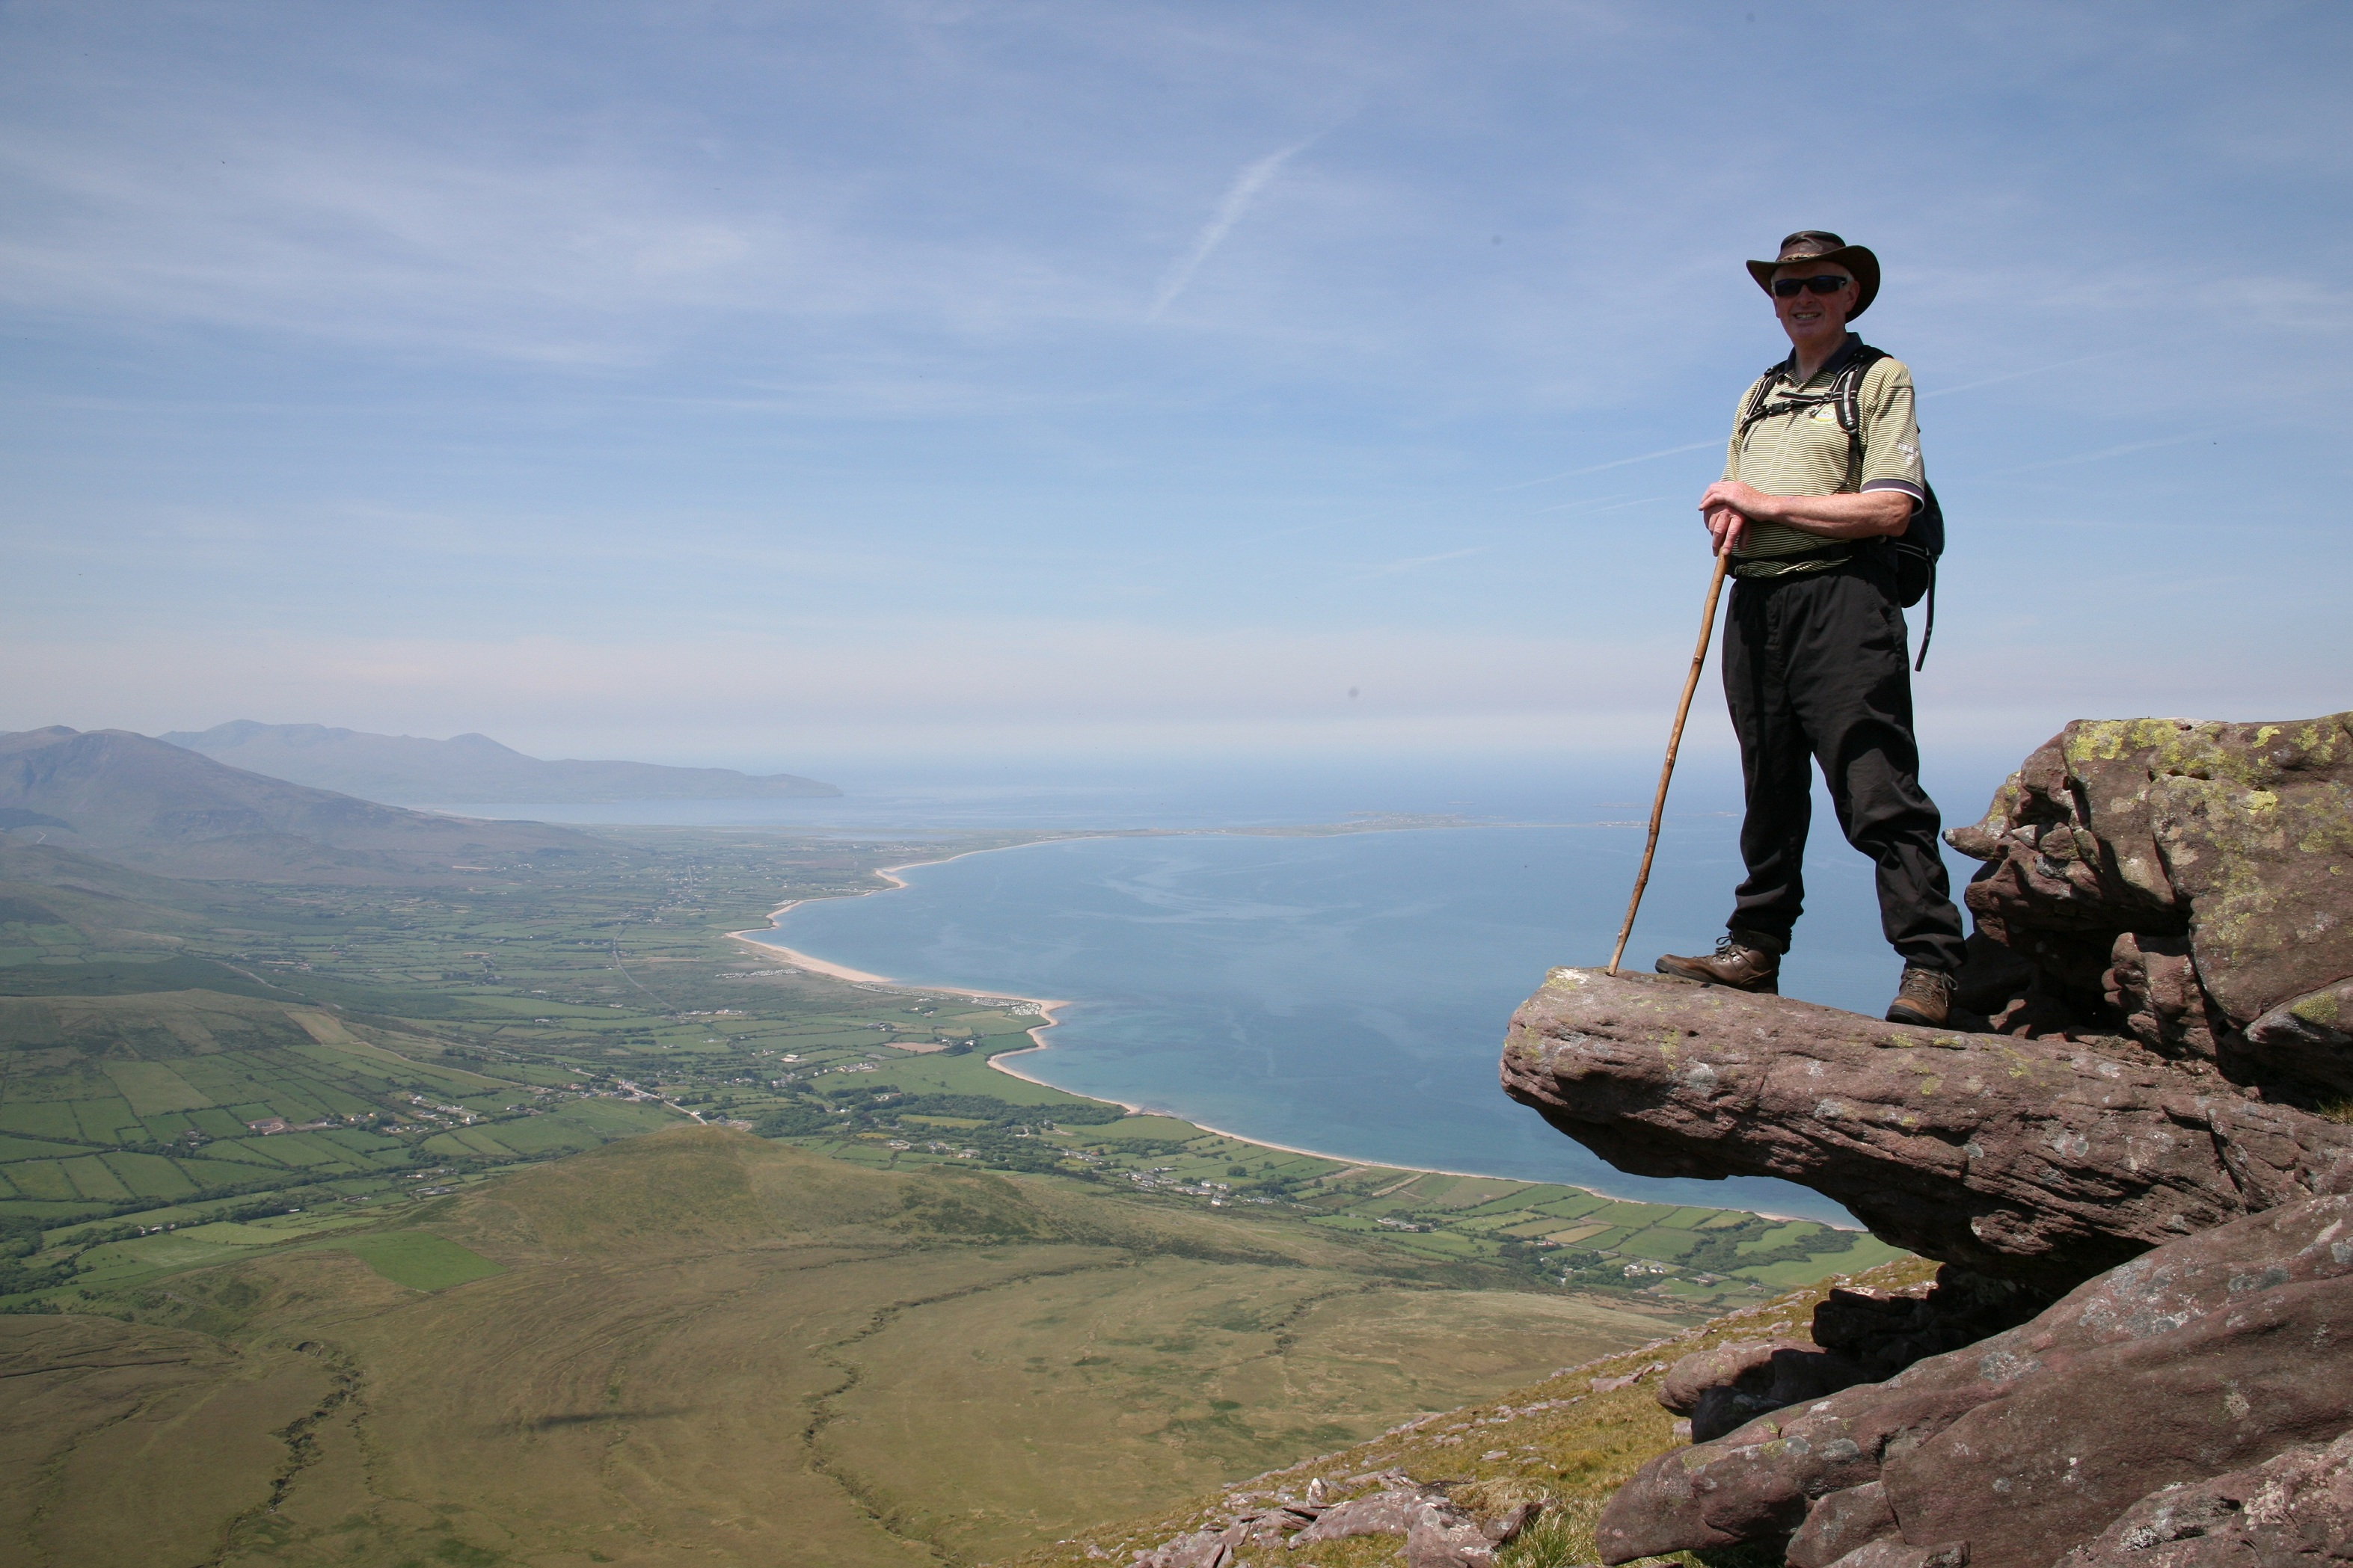 chair cover hire kerry office with massage dingle way walking route map guide ireland activeme ie mtns june 2009 041 copy